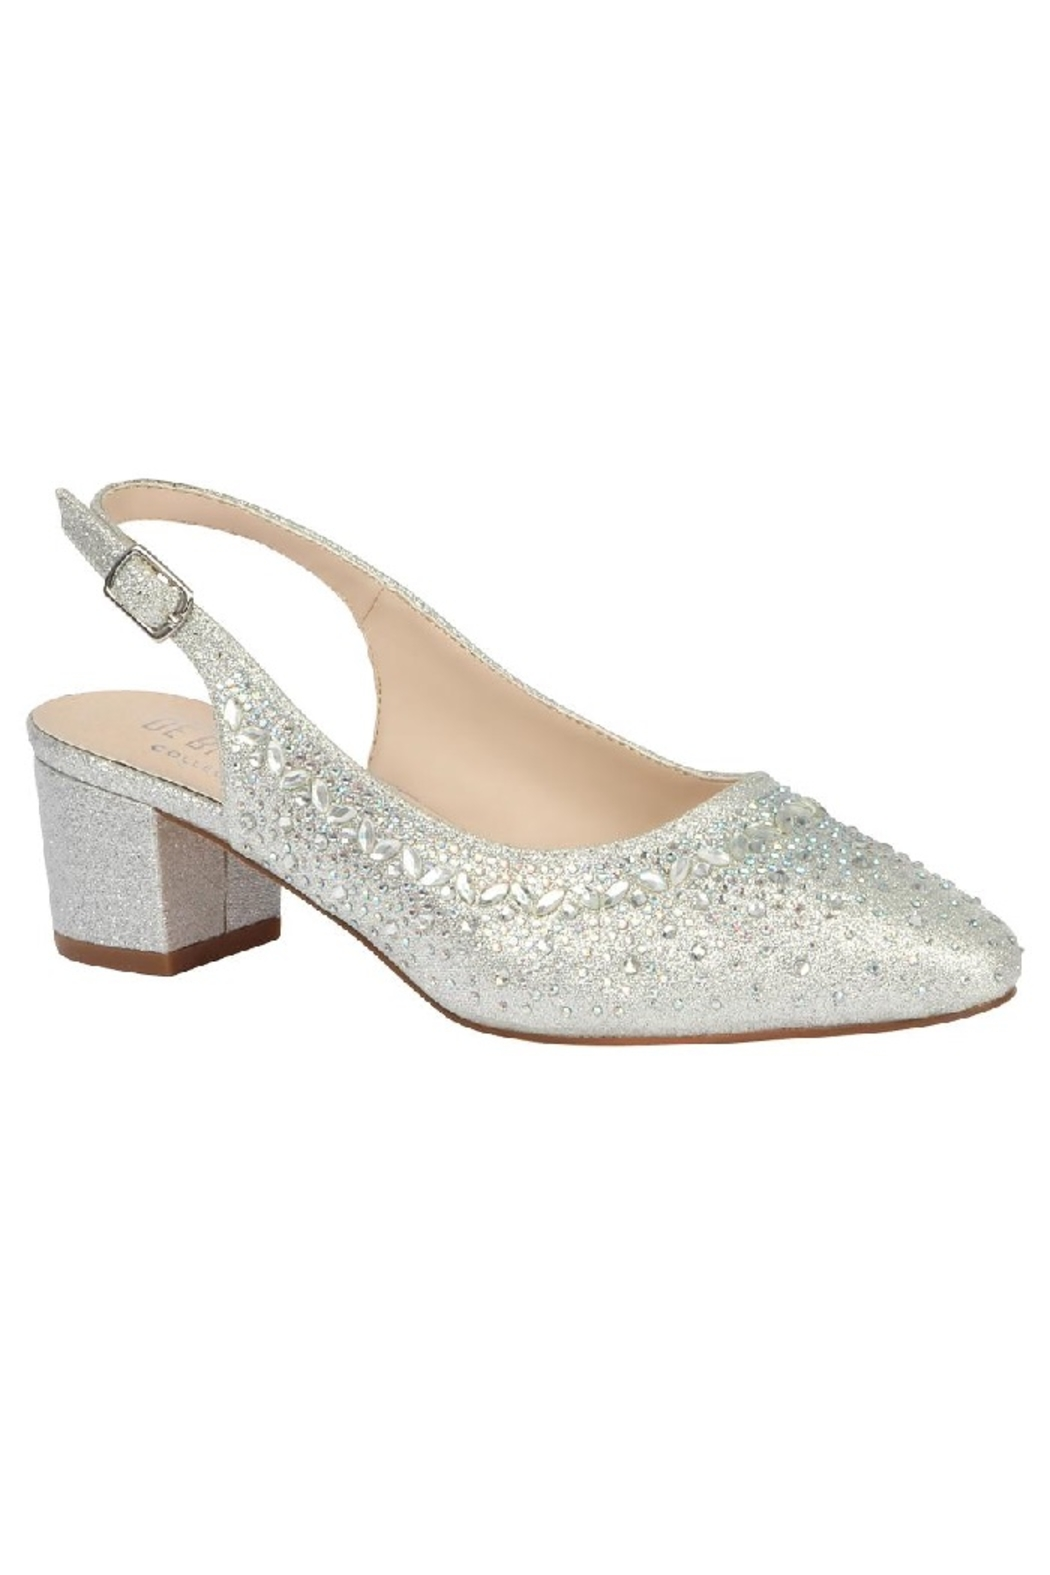 De Blossom Collection Silver Glitter Low Block Heels - Main Image